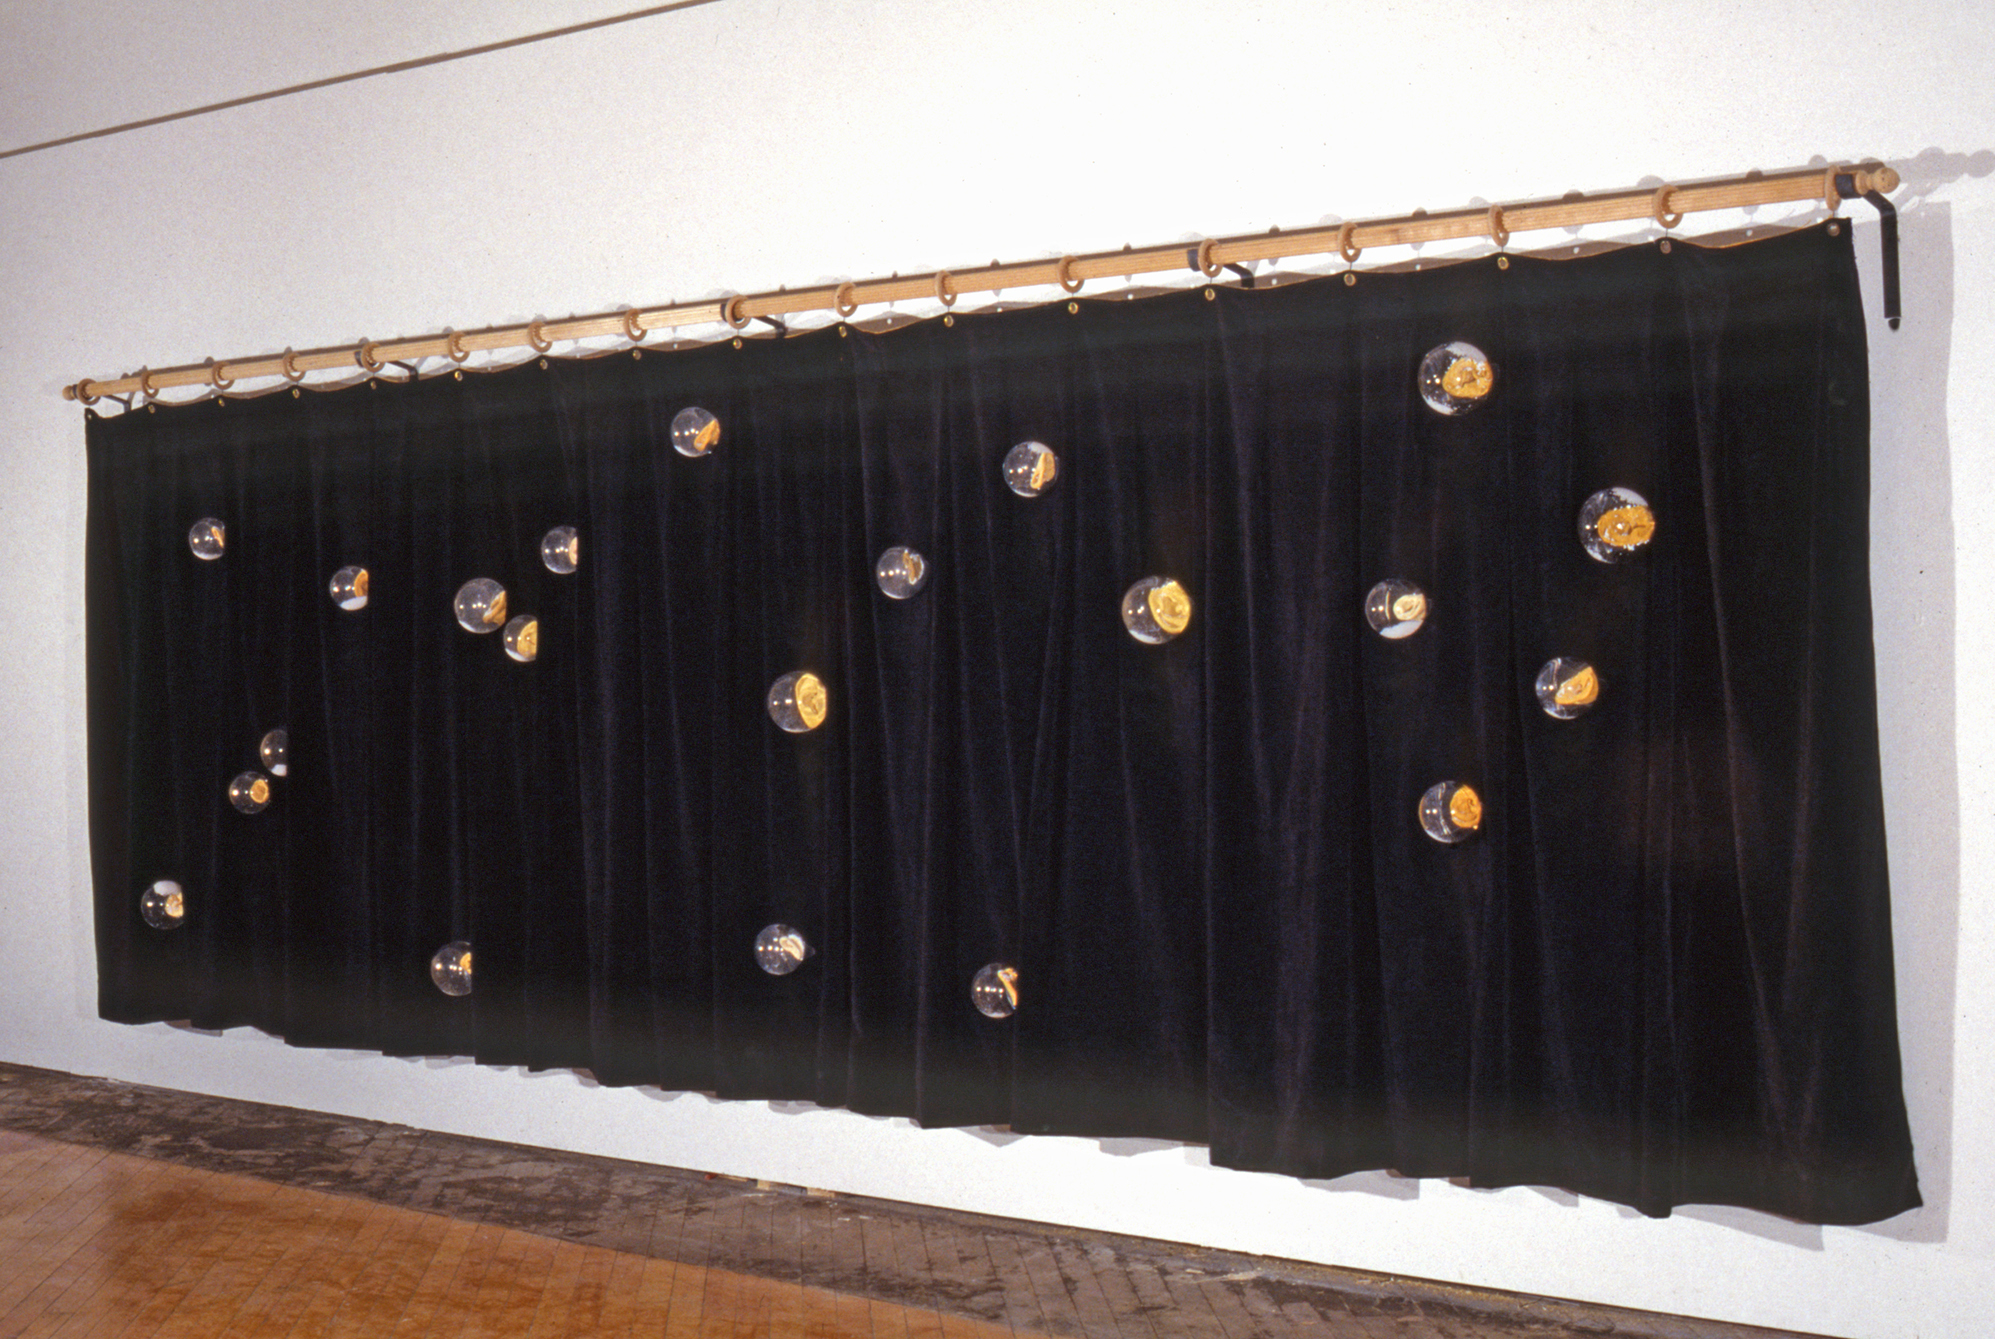 CURTAIN WITH EARS (1994) / Motors, snow globes, cast ears, wood, latex tubing, velvet curtain, 66 x 168 x 11""